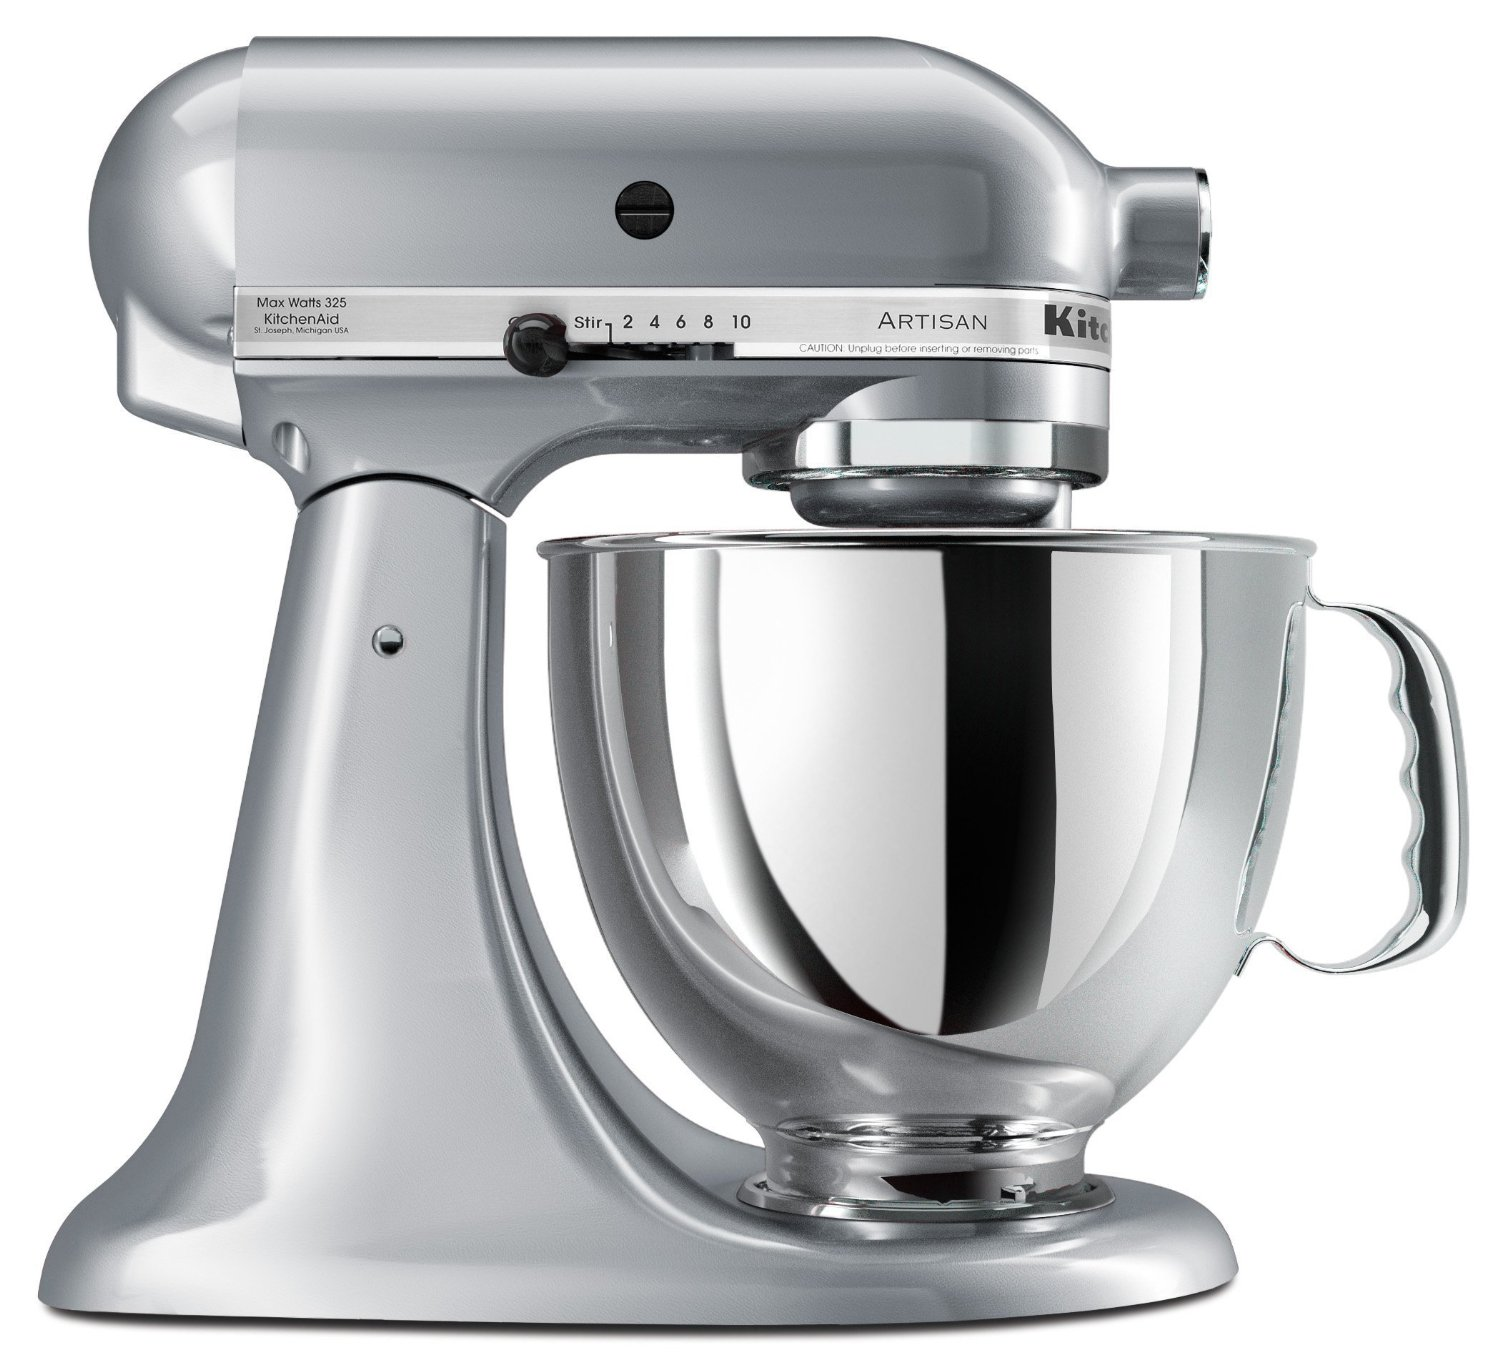 KitchenAid Mixers. Make everything with love using an iconic KitchenAid mixer. Whip up dough, batter and much more using a stand or hand design. Explore our collection of mixers in various sizes, styles and colors to find your next favorite kitchen companion. Powerful, dynamic and classic—a KitchenAid mixer is all of this and more!